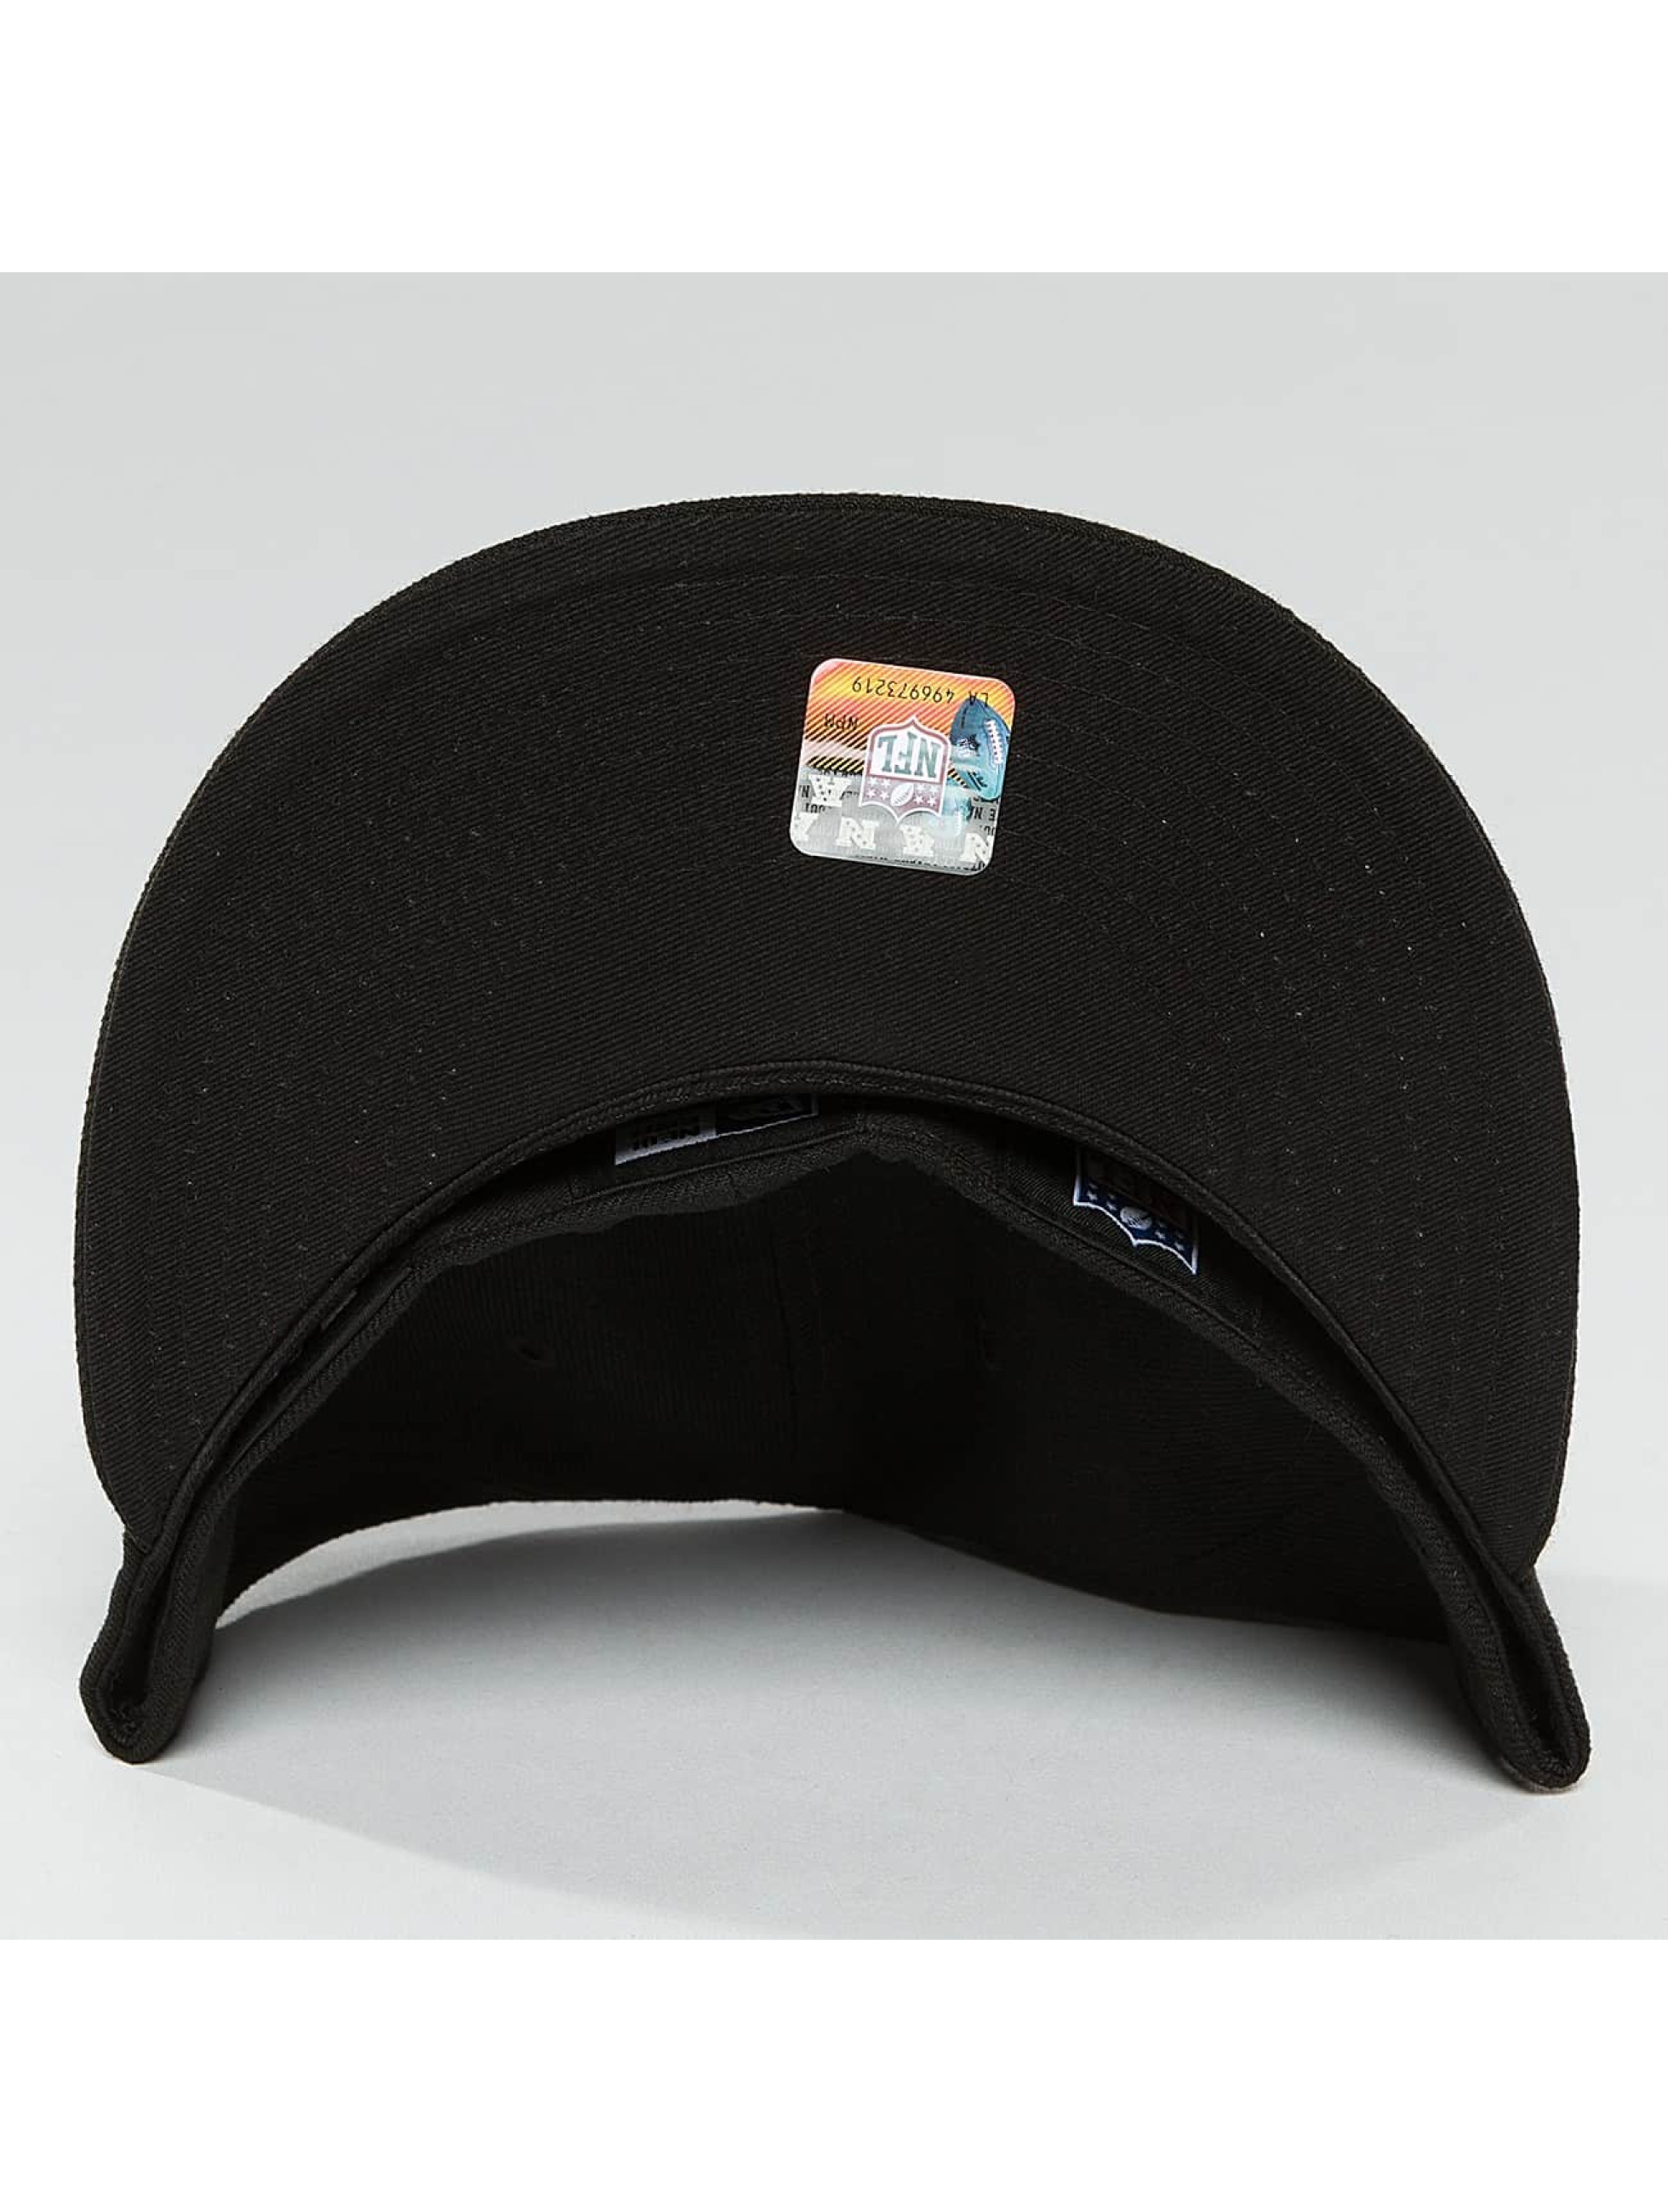 New Era Fitted Cap Black Graphite New England Patriots 59Fifty black